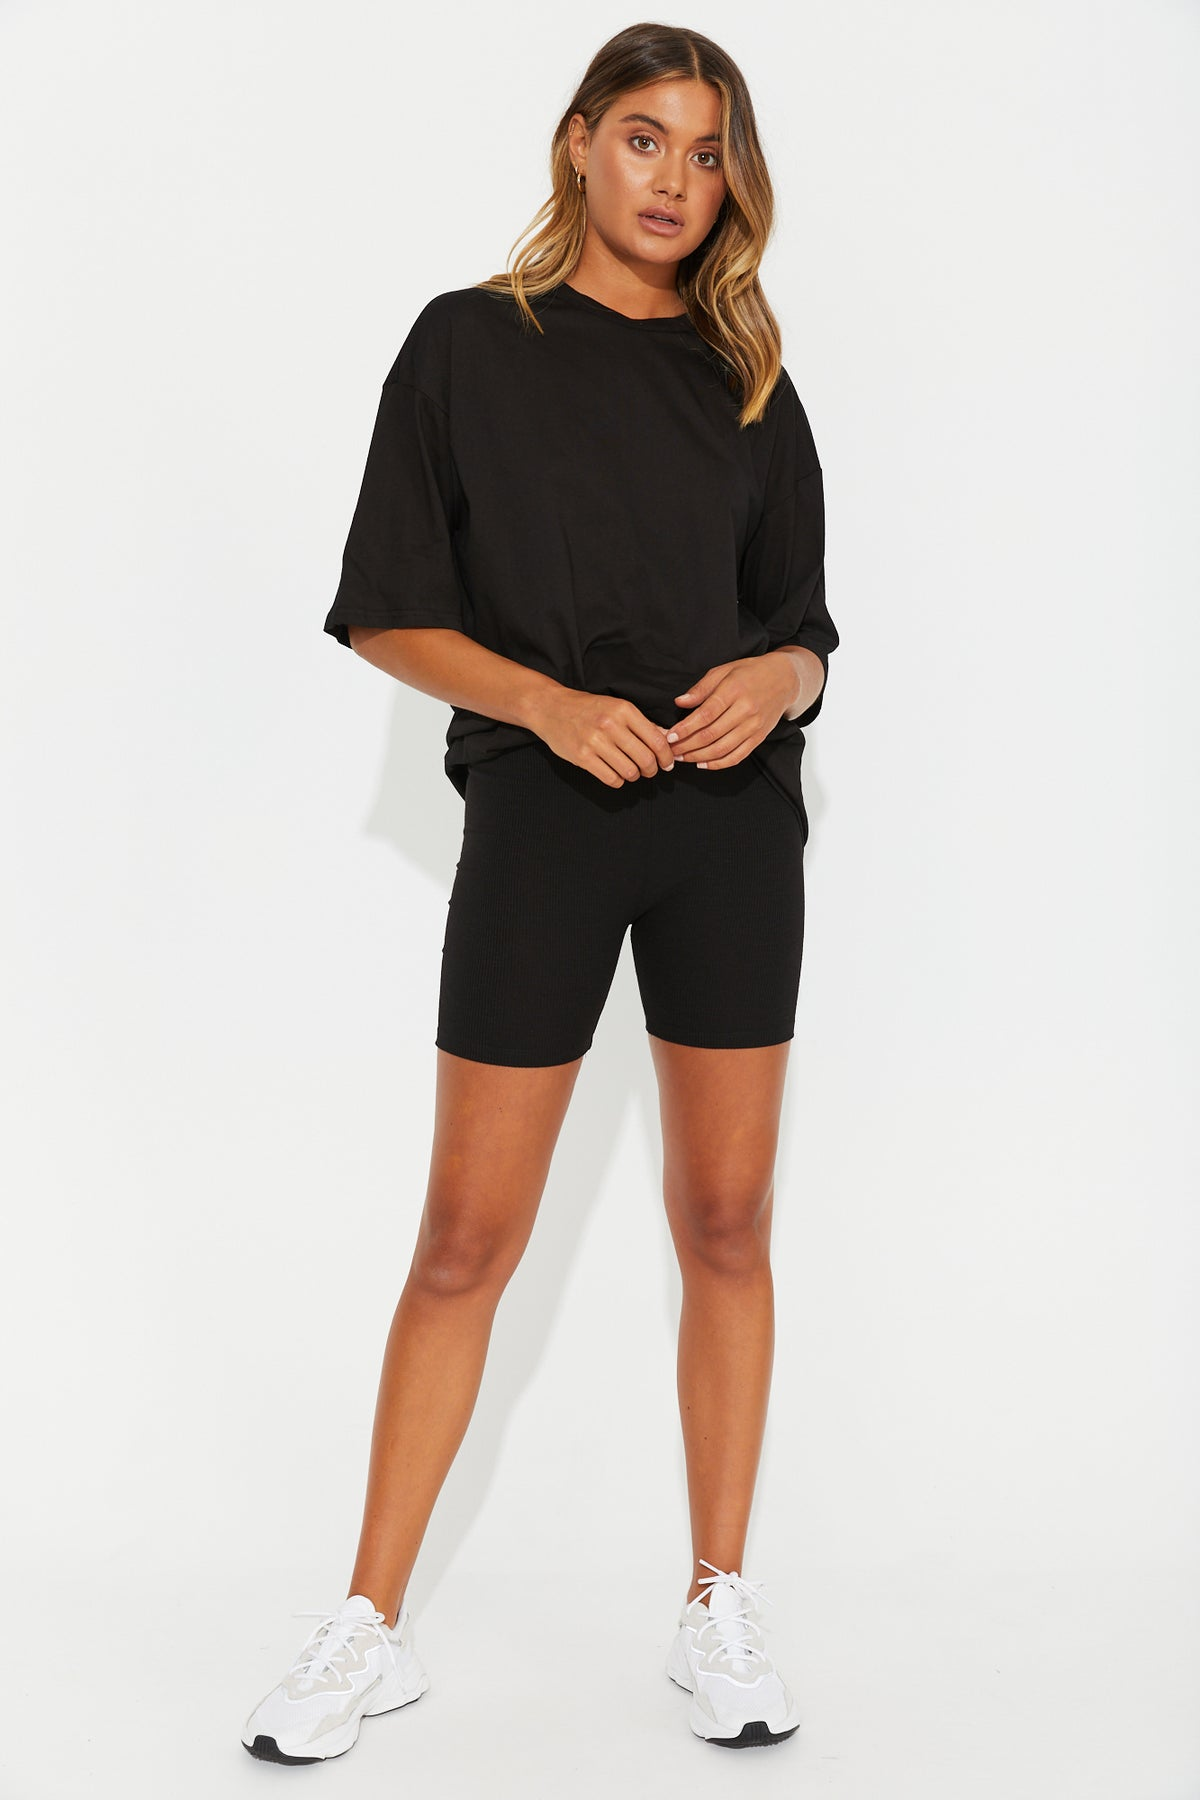 Koko Ribbed Bike Short Black